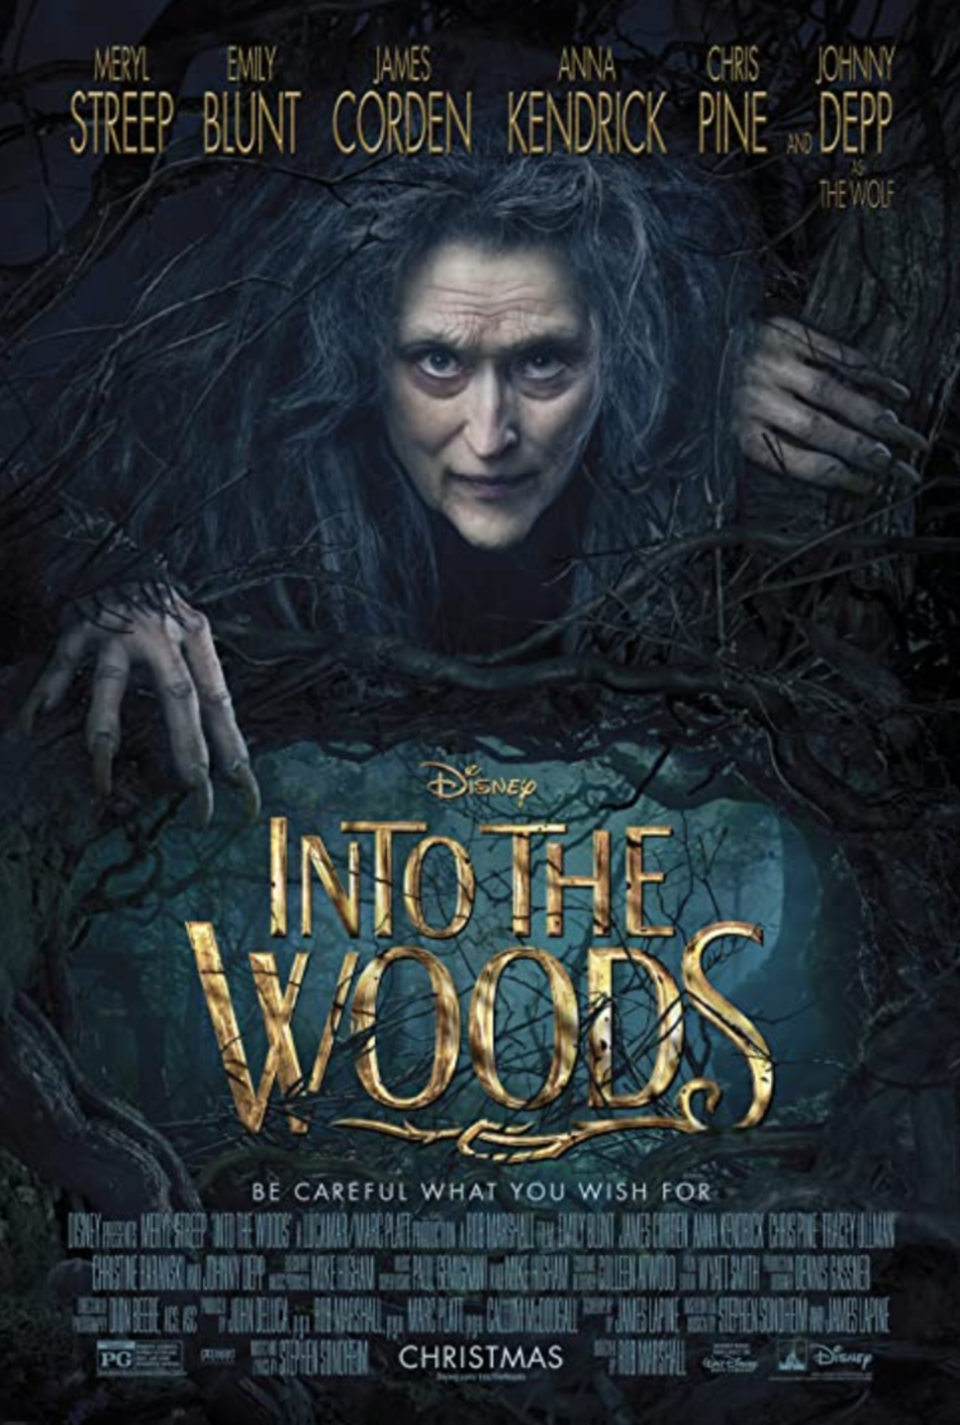 """<p>A witch (<strong>Meryl Streep</strong>) makes a childless baker and his wife (<strong>James Corden</strong> and <strong>Emily Blunt</strong>) go on a three-day adventure to get magical items from classic fairy tales like <em>Cinderella, Little Red Riding Hood, Rapunzel</em> and <em>Jack & the Beanstalk. </em>Needless to say, things don't go as planned. </p><p><a class=""""link rapid-noclick-resp"""" href=""""https://go.redirectingat.com?id=74968X1596630&url=https%3A%2F%2Fwww.disneyplus.com%2Fmovies%2Finto-the-woods%2F1YYWziMOrDdq&sref=https%3A%2F%2Fwww.goodhousekeeping.com%2Flife%2Fentertainment%2Fg33651563%2Fdisney-halloween-movies%2F"""" rel=""""nofollow noopener"""" target=""""_blank"""" data-ylk=""""slk:WATCH NOW"""">WATCH NOW</a></p>"""